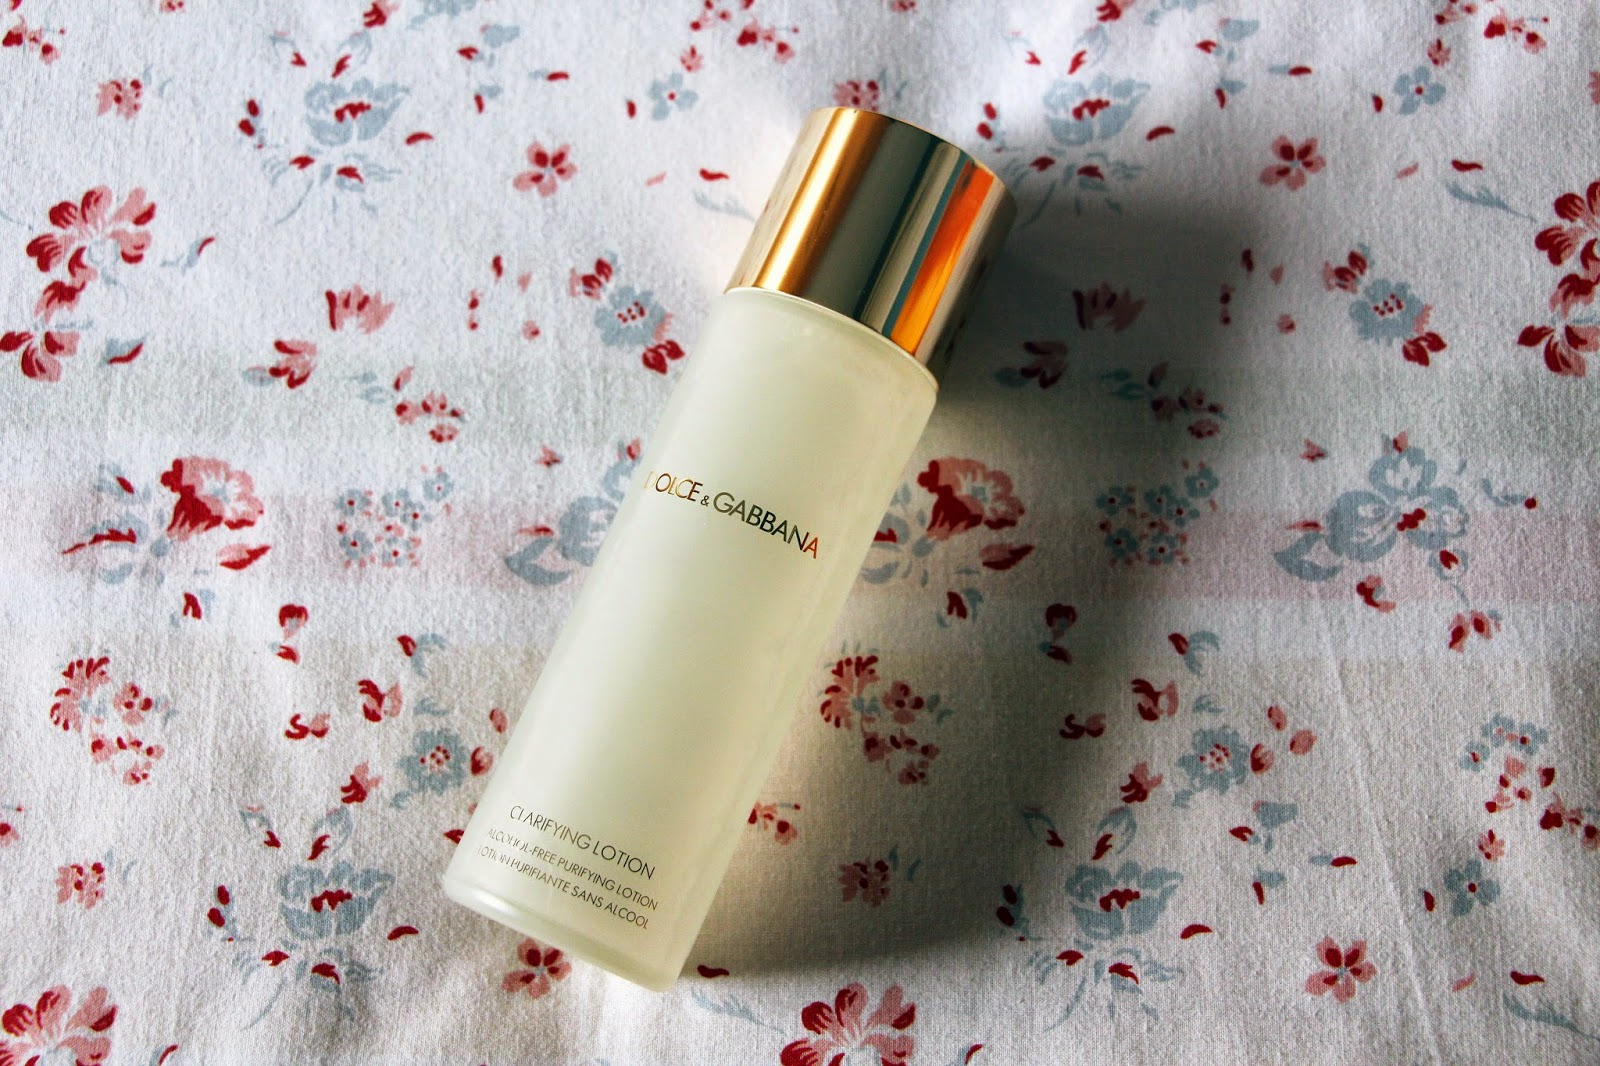 Dolce & Gabbana Clarifying Lotion Review